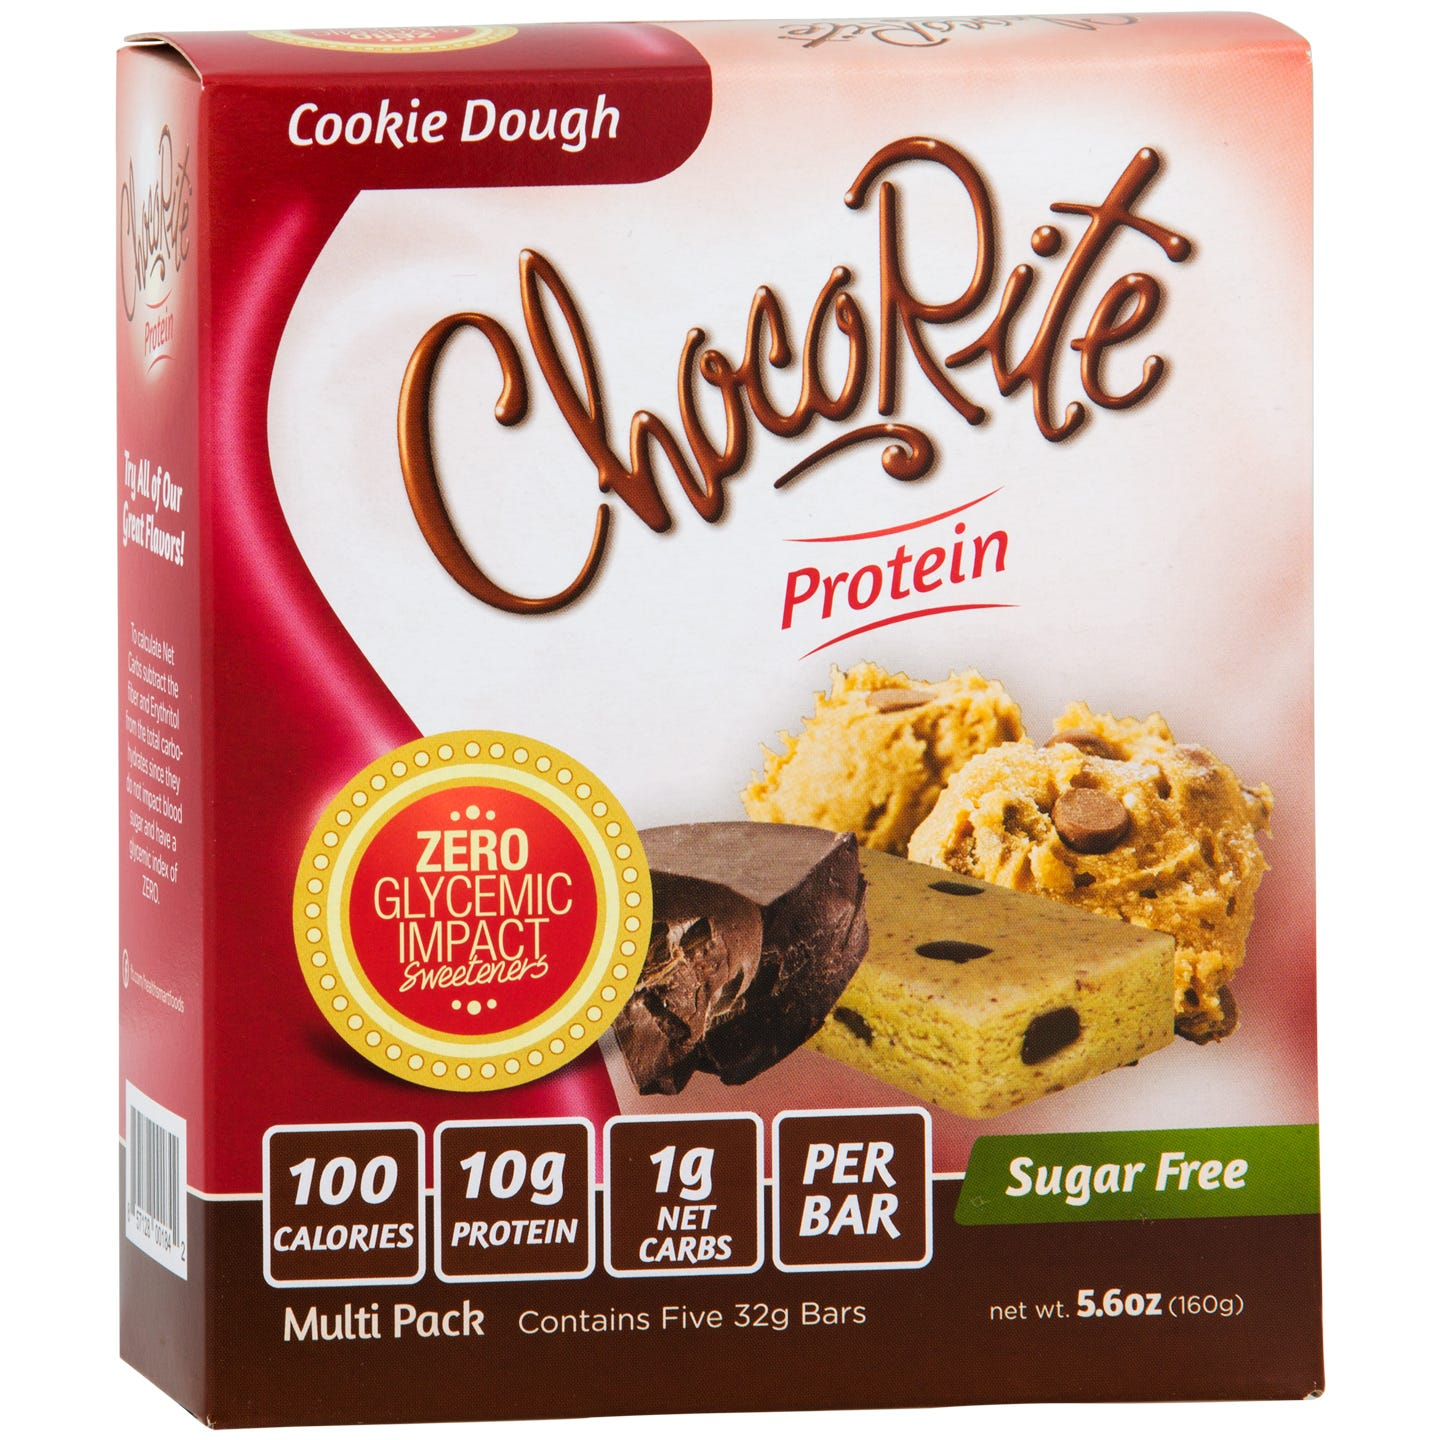 Sugar Free Protein Bar, Cookie Dough (5 Bars) - ChocoRite - Rapid Diet Weight Loss Products Shop